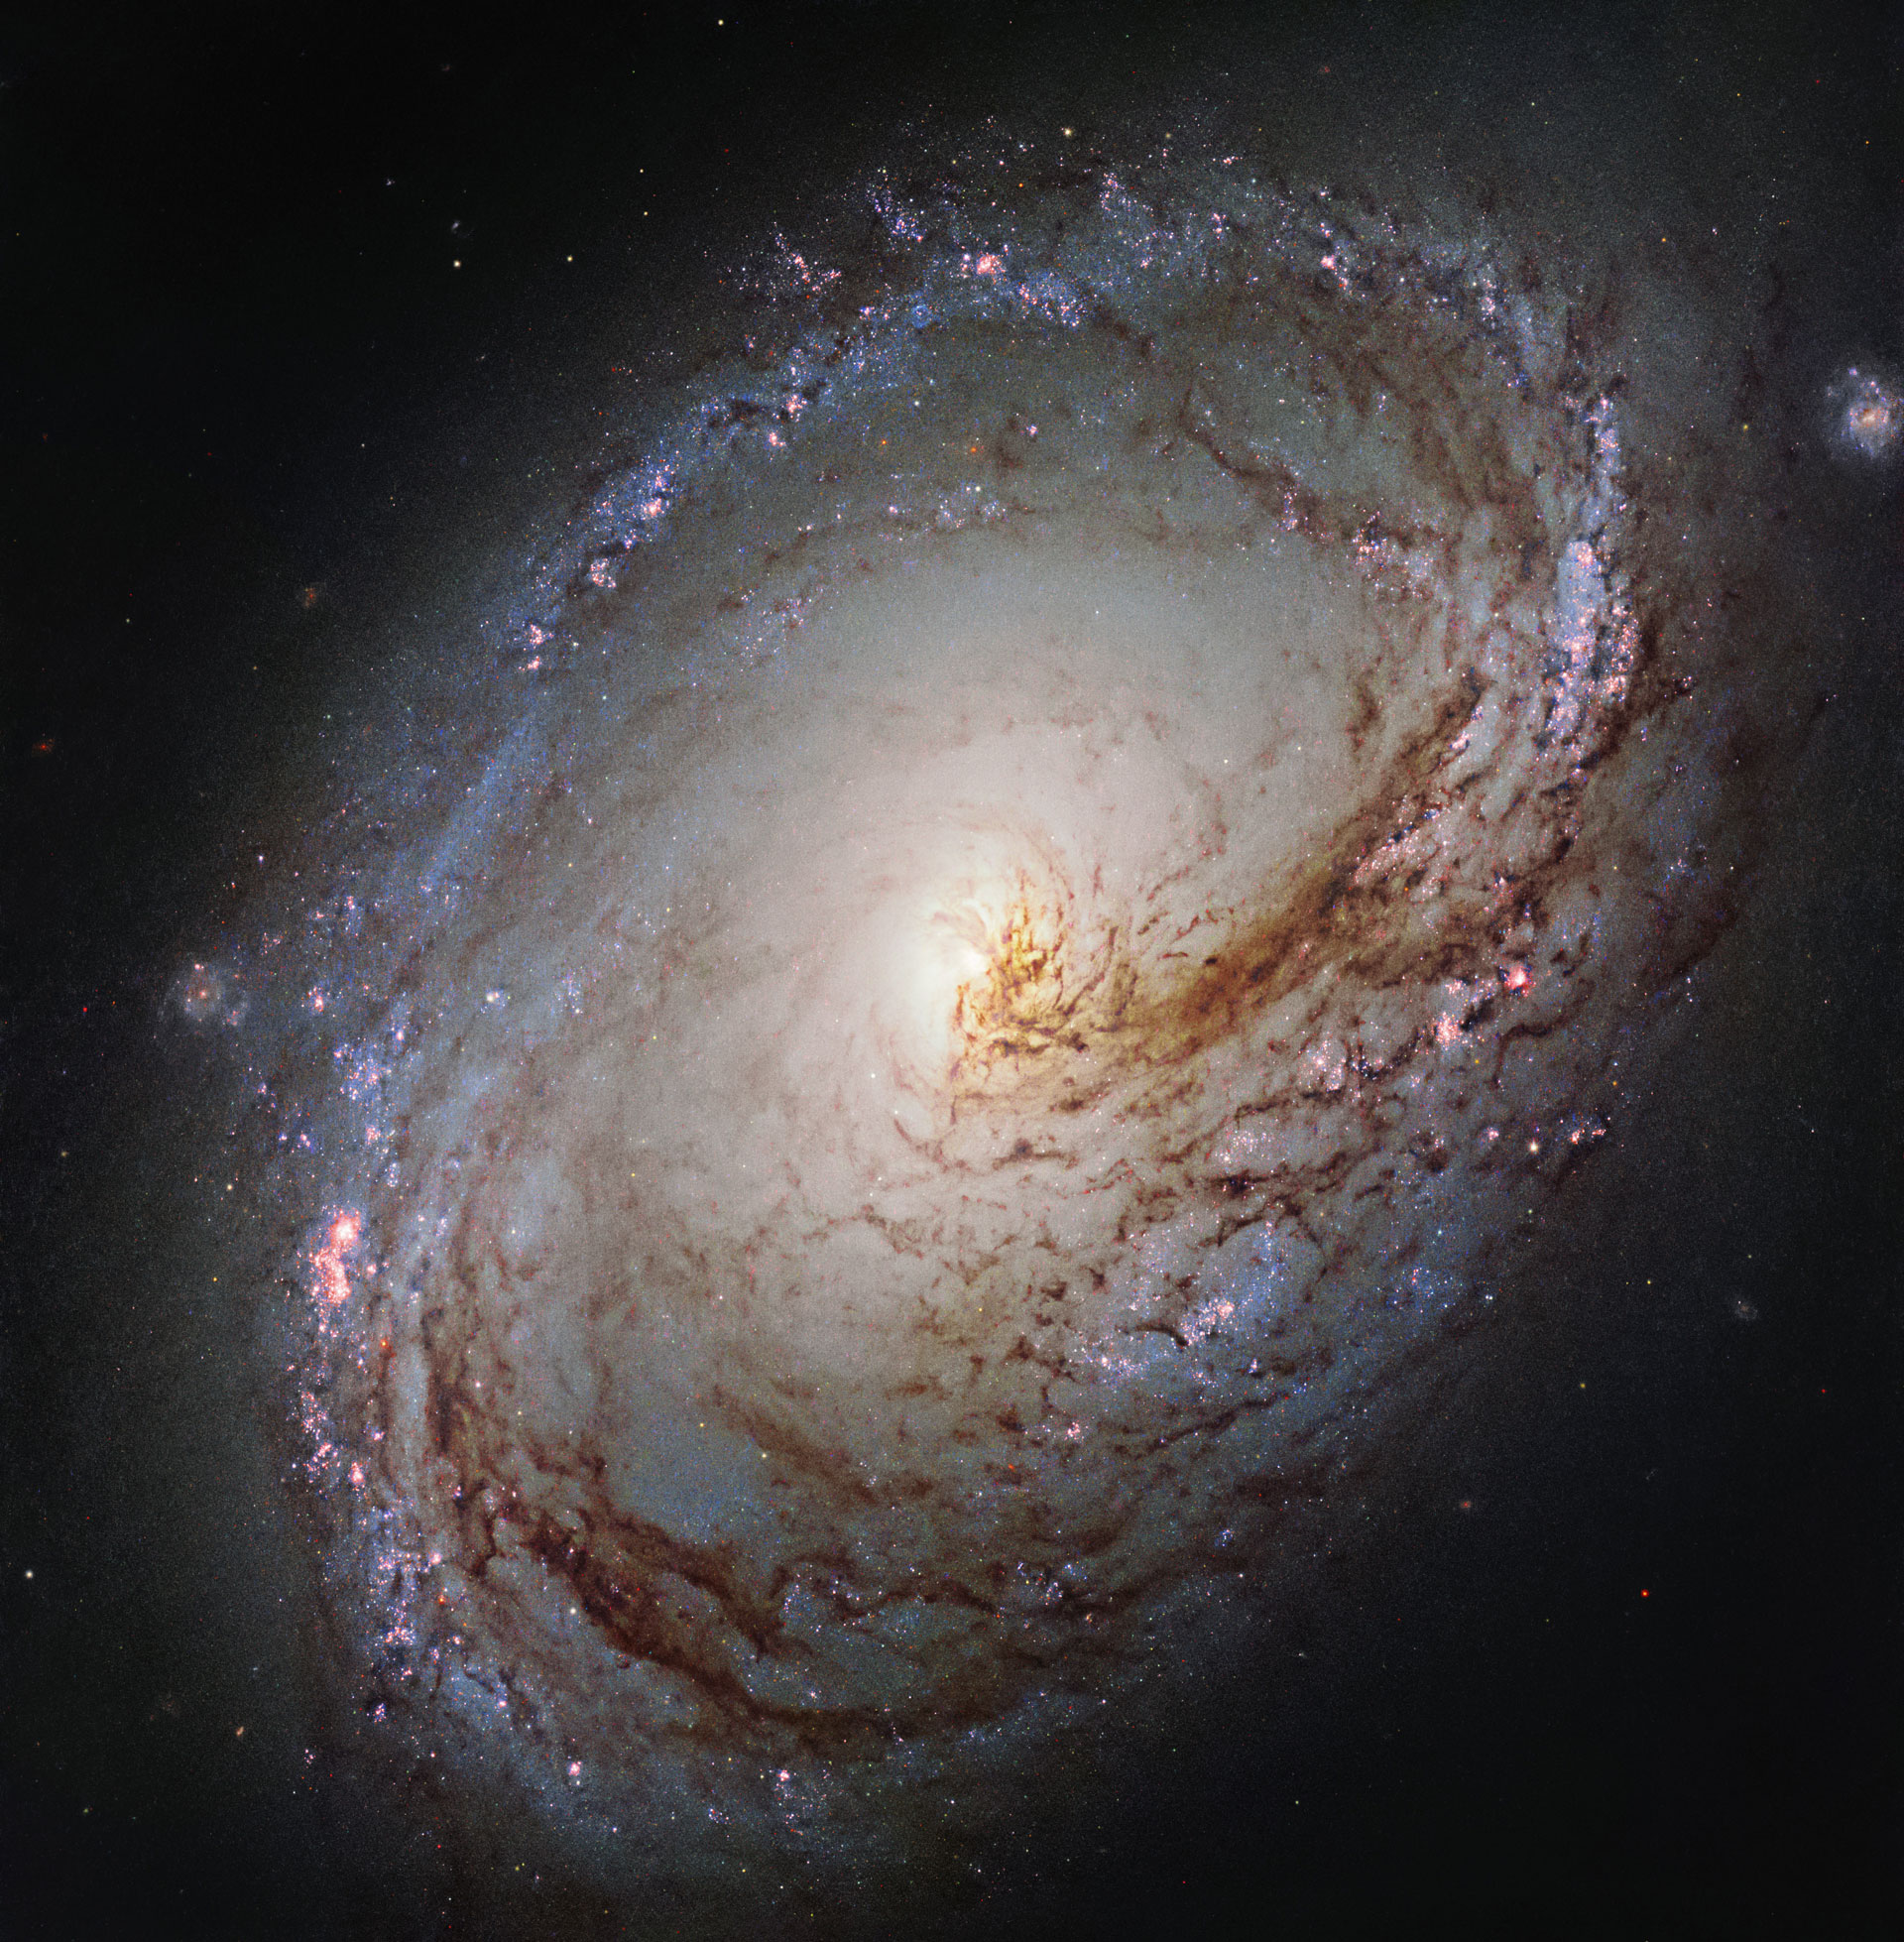 Newly Released Hubble Image of Spiral Galaxy Messier 96